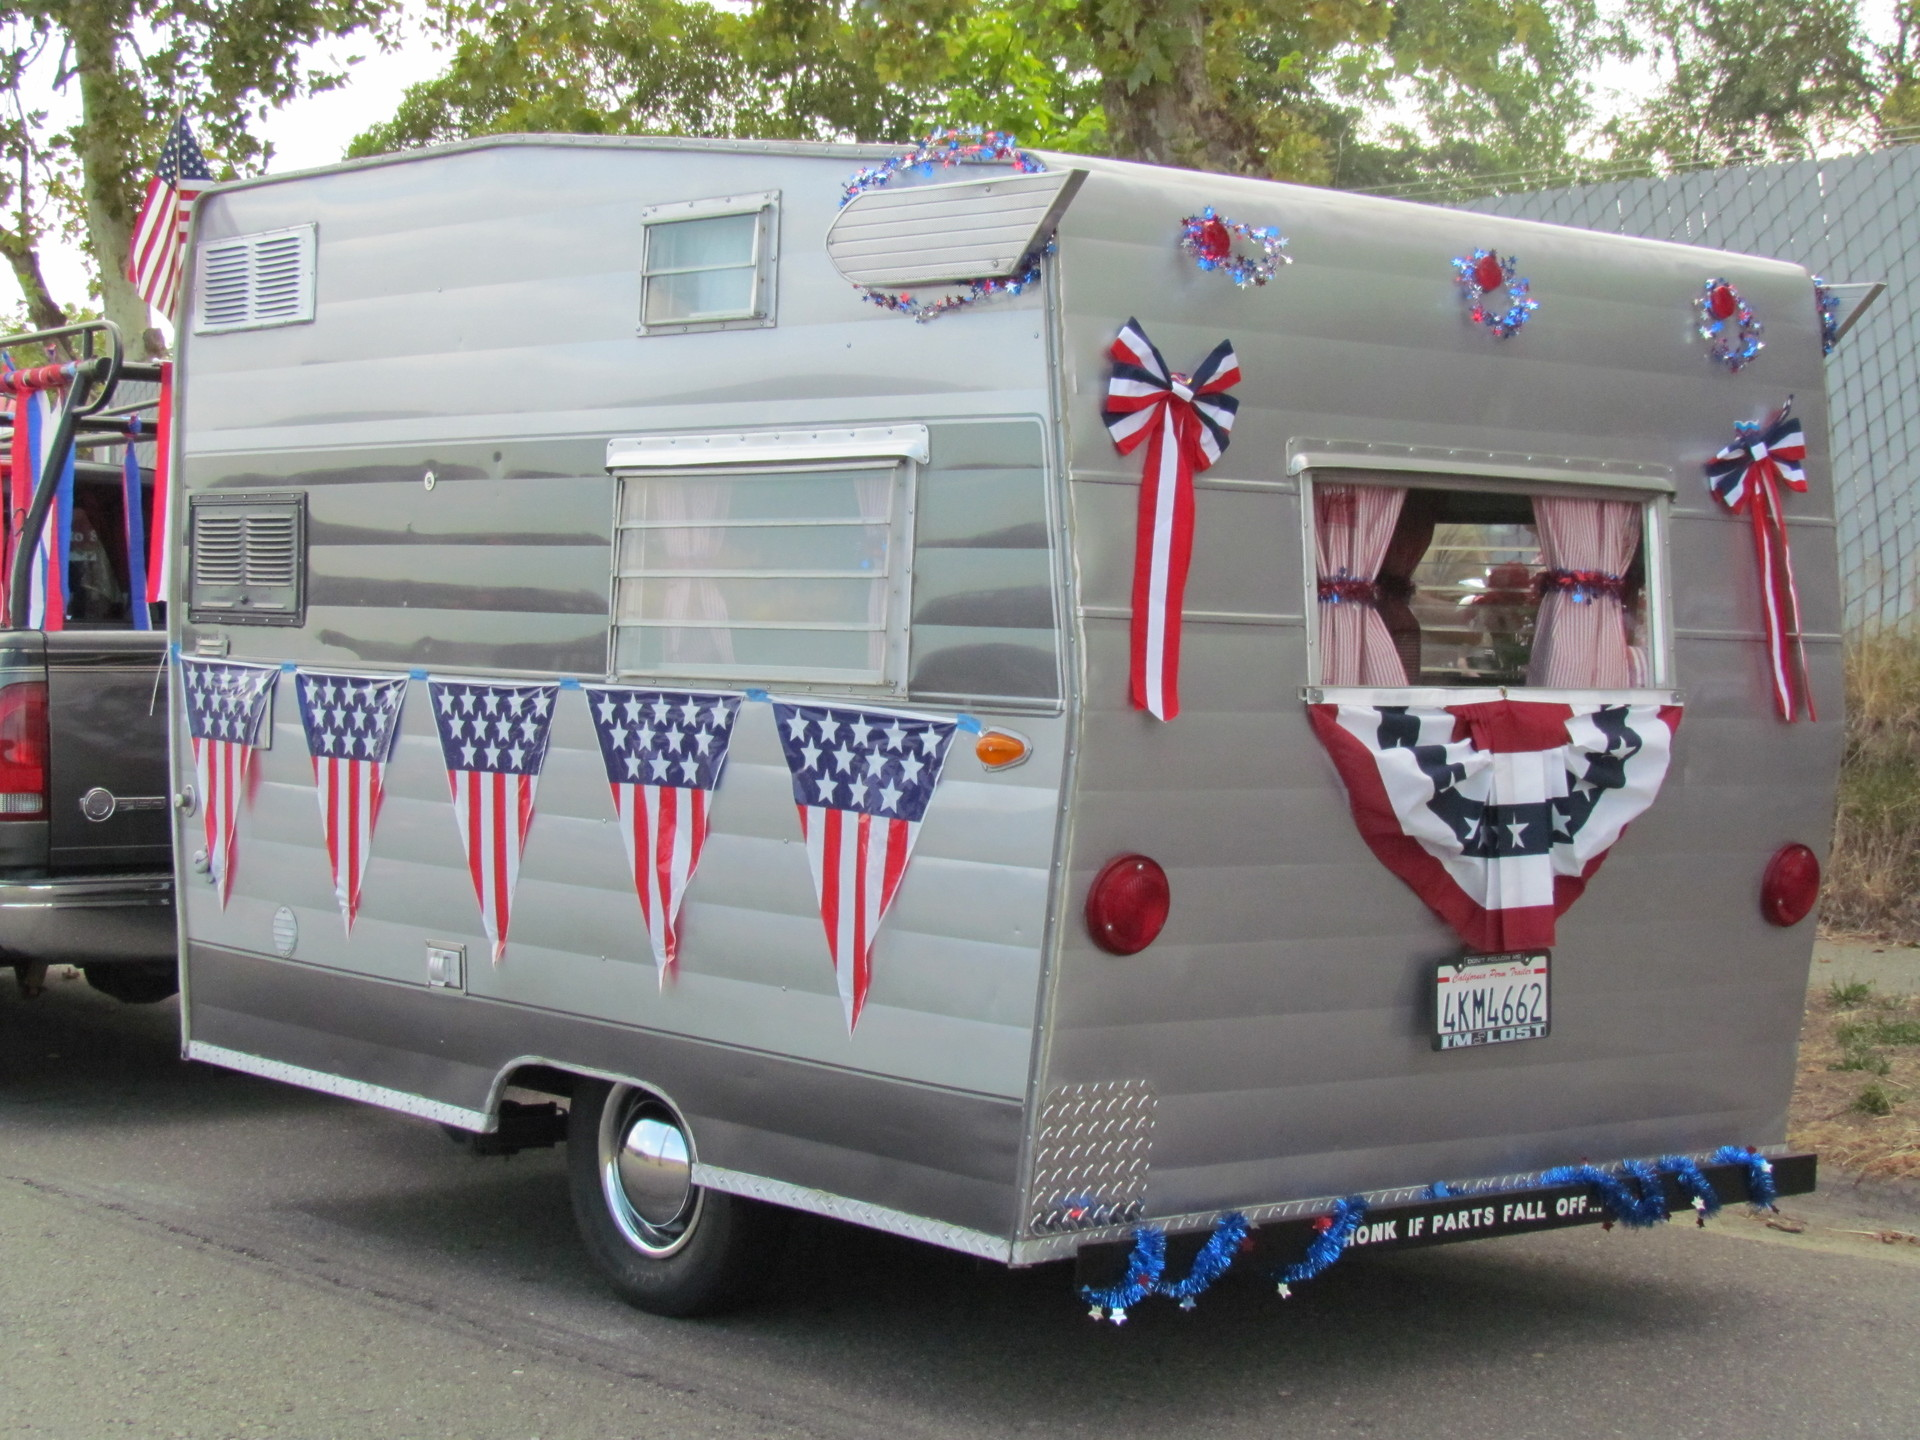 For some, restoring vintage camper trailers like this one is part hobby, part addiction.